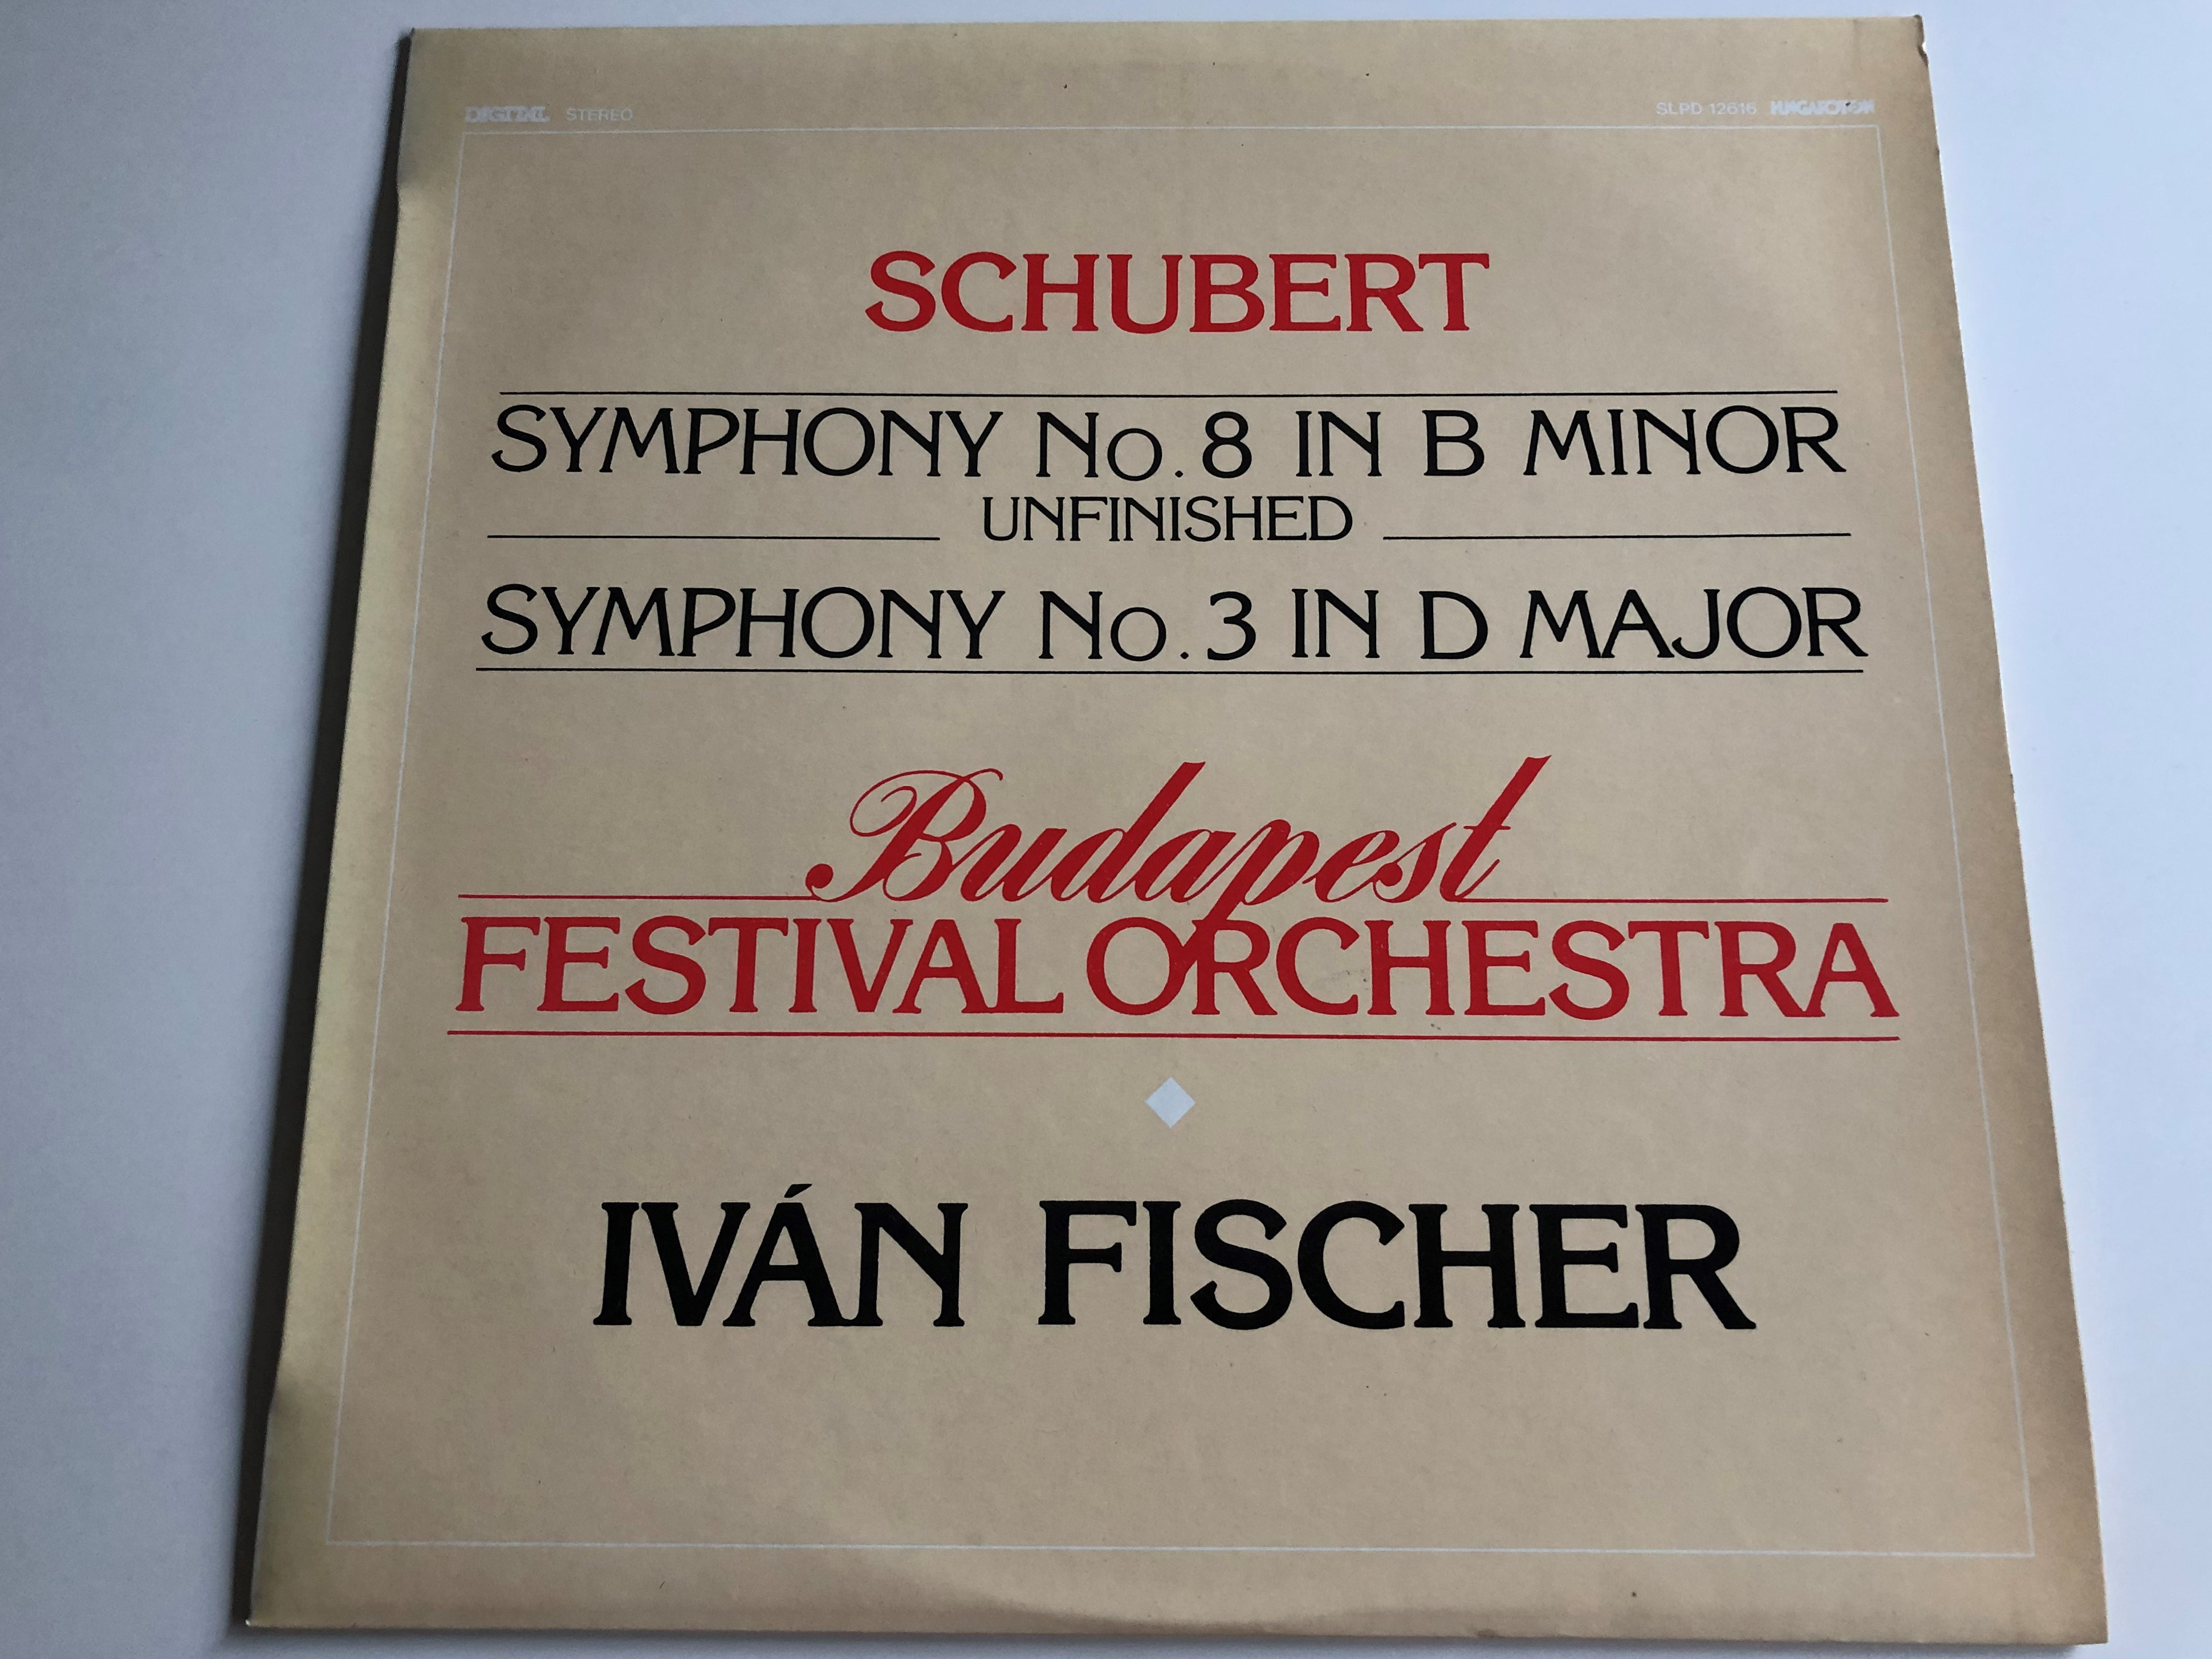 schubert-symphony-no.-8-in-b-minor-unfinished-symphony-no.-3-in-d-major-budapest-festival-orchestra-ivan-fischer-hungaroton-lp-digital-stereo-slpd-12616-1-.jpg